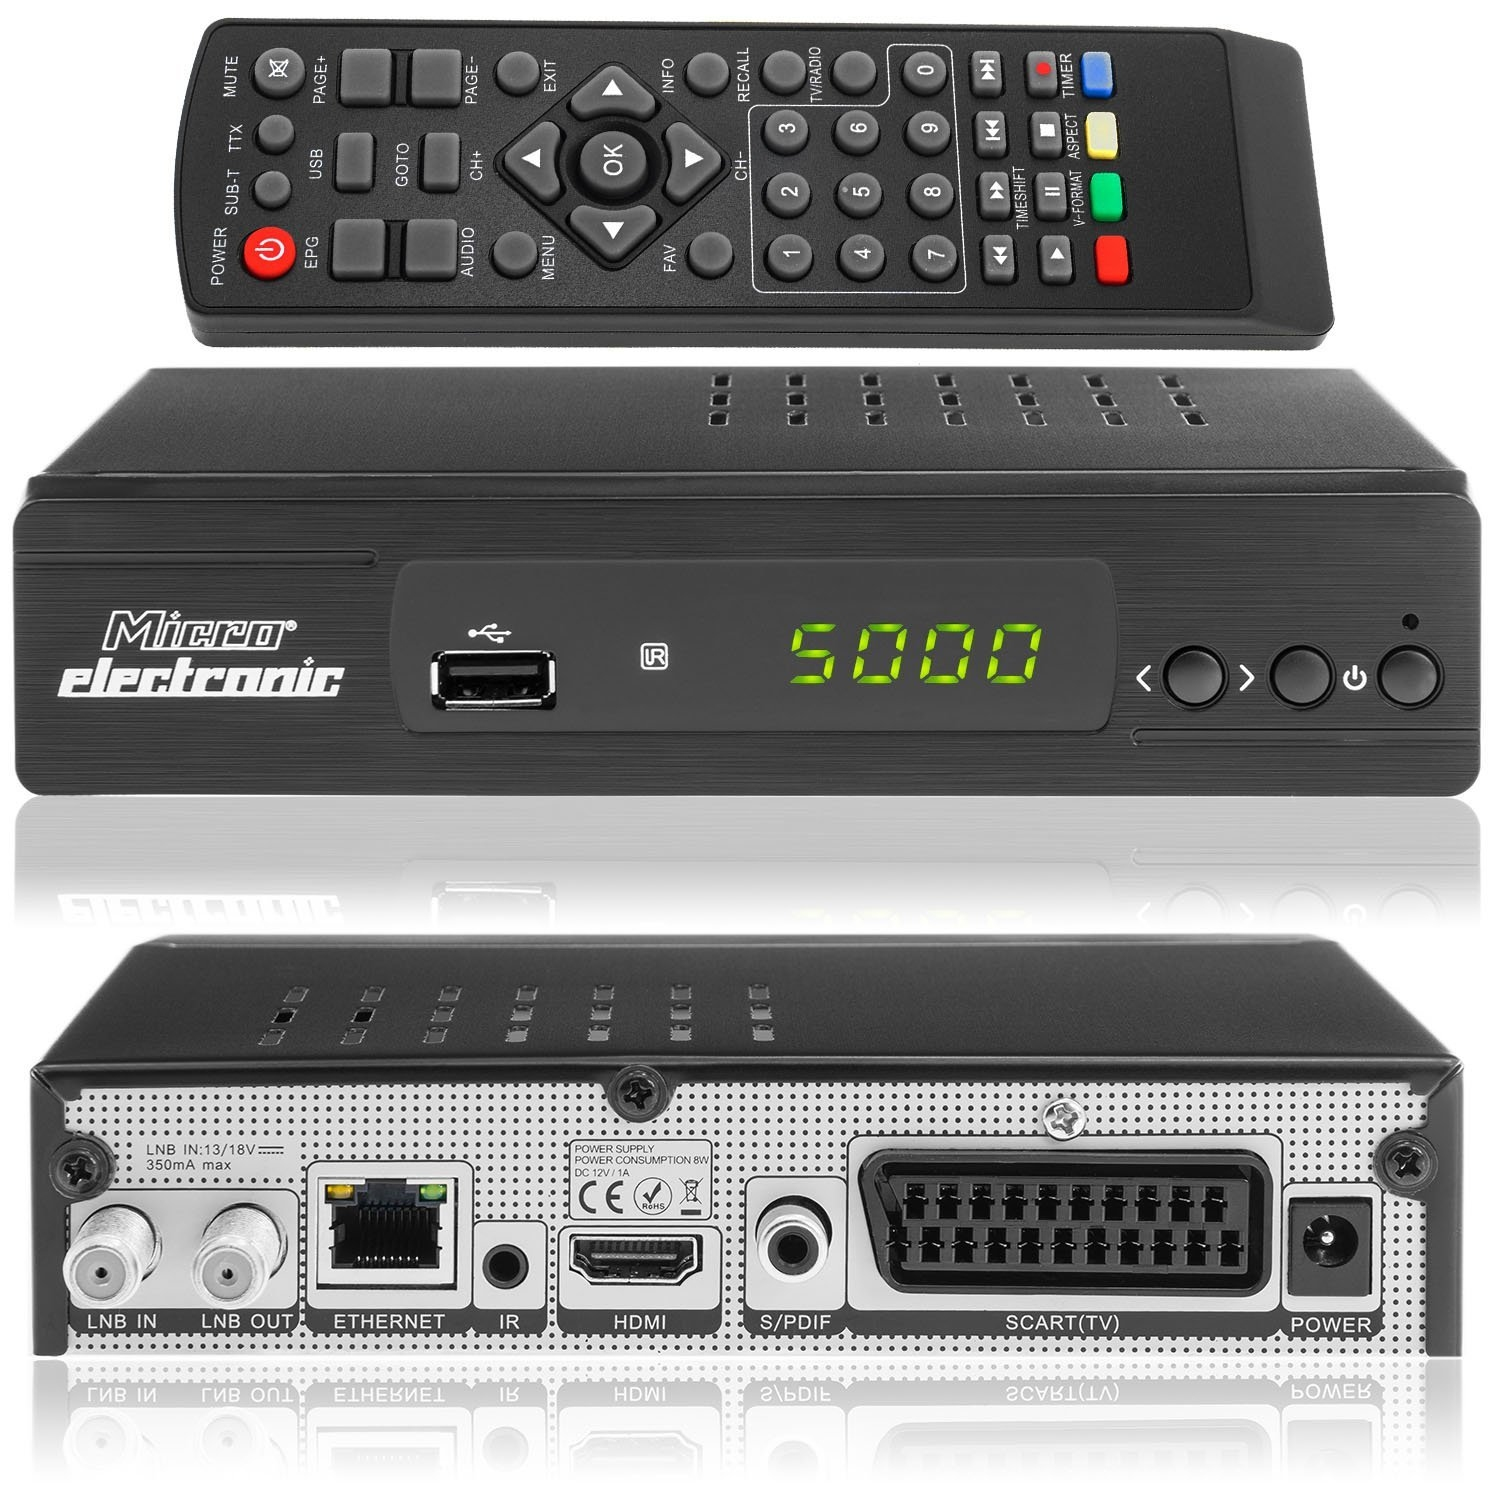 micro electronic m380 plus hd 1080p full hd sat receiver lan scart 12v camping 4250368420323 ebay. Black Bedroom Furniture Sets. Home Design Ideas